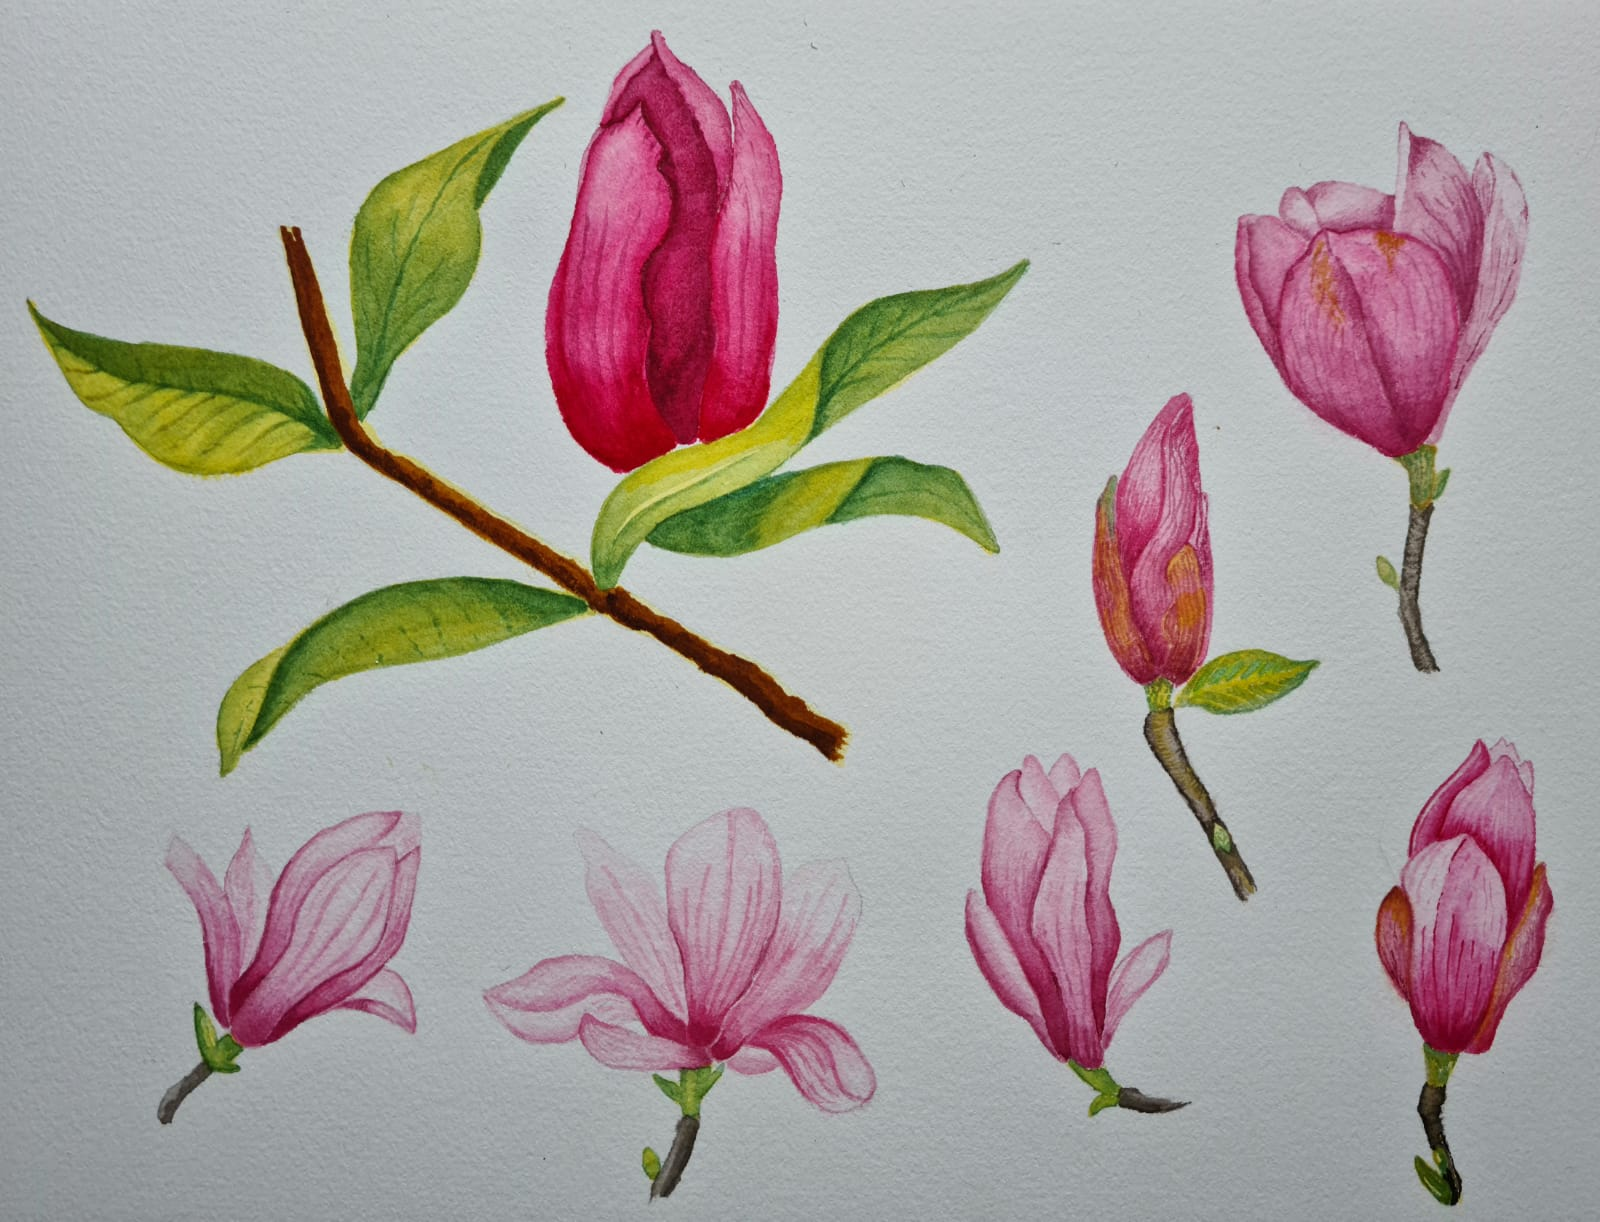 Incredible watercolour paintings created by  beginners during their online art classes with artist Raya Brown.